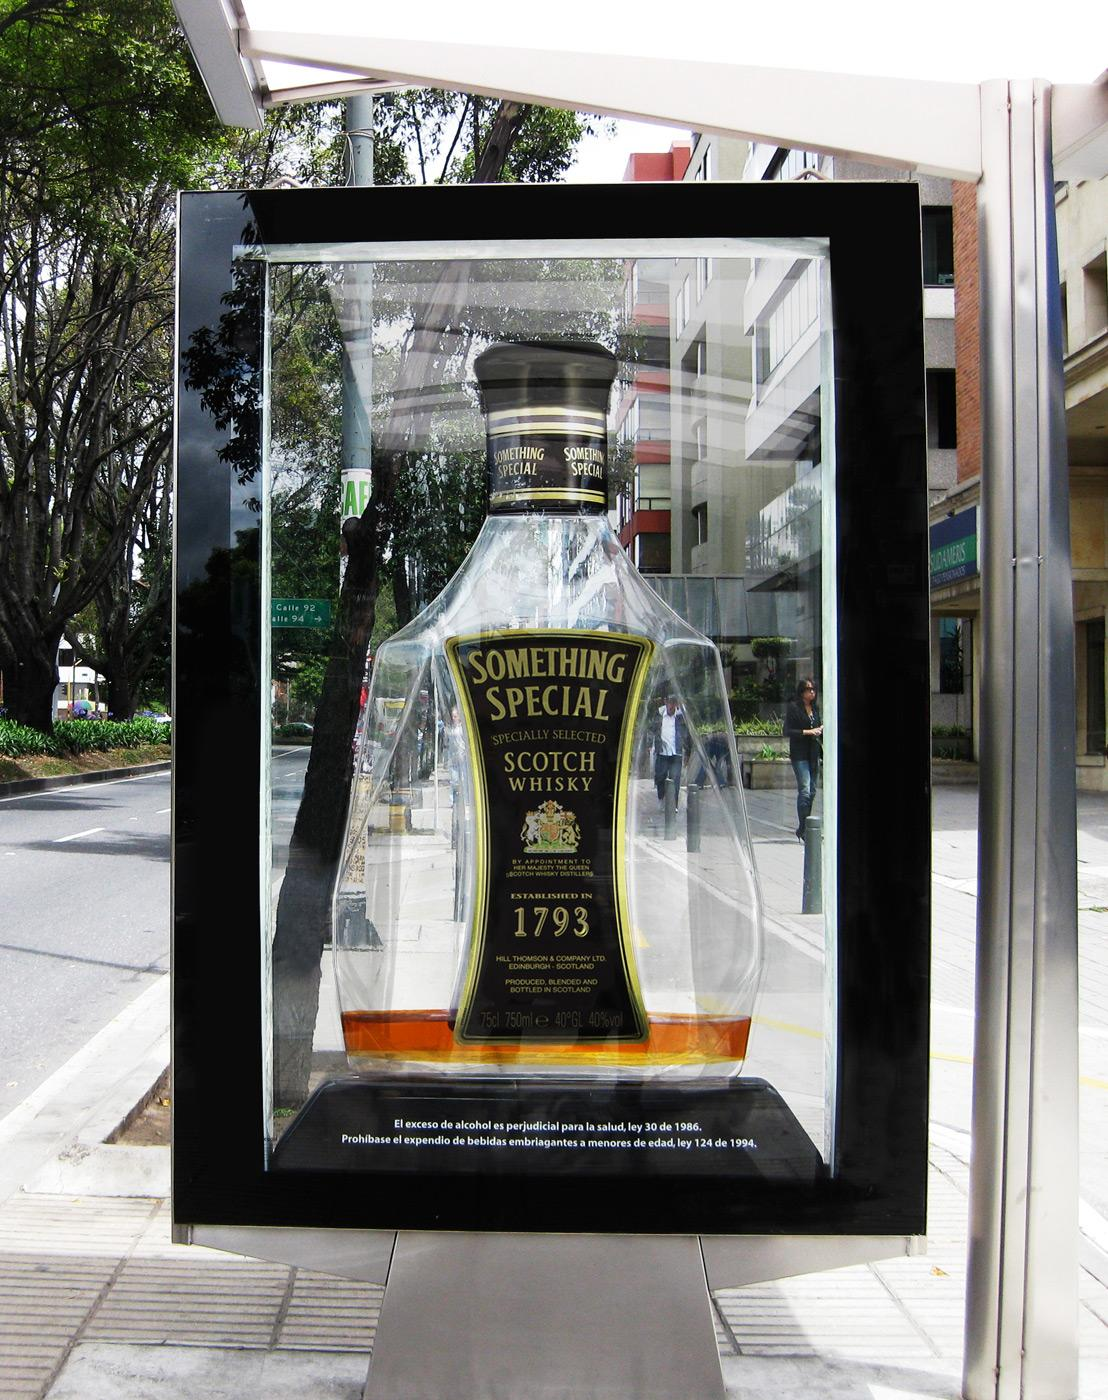 Something Specia Outdoor Ad -  Empty bottle